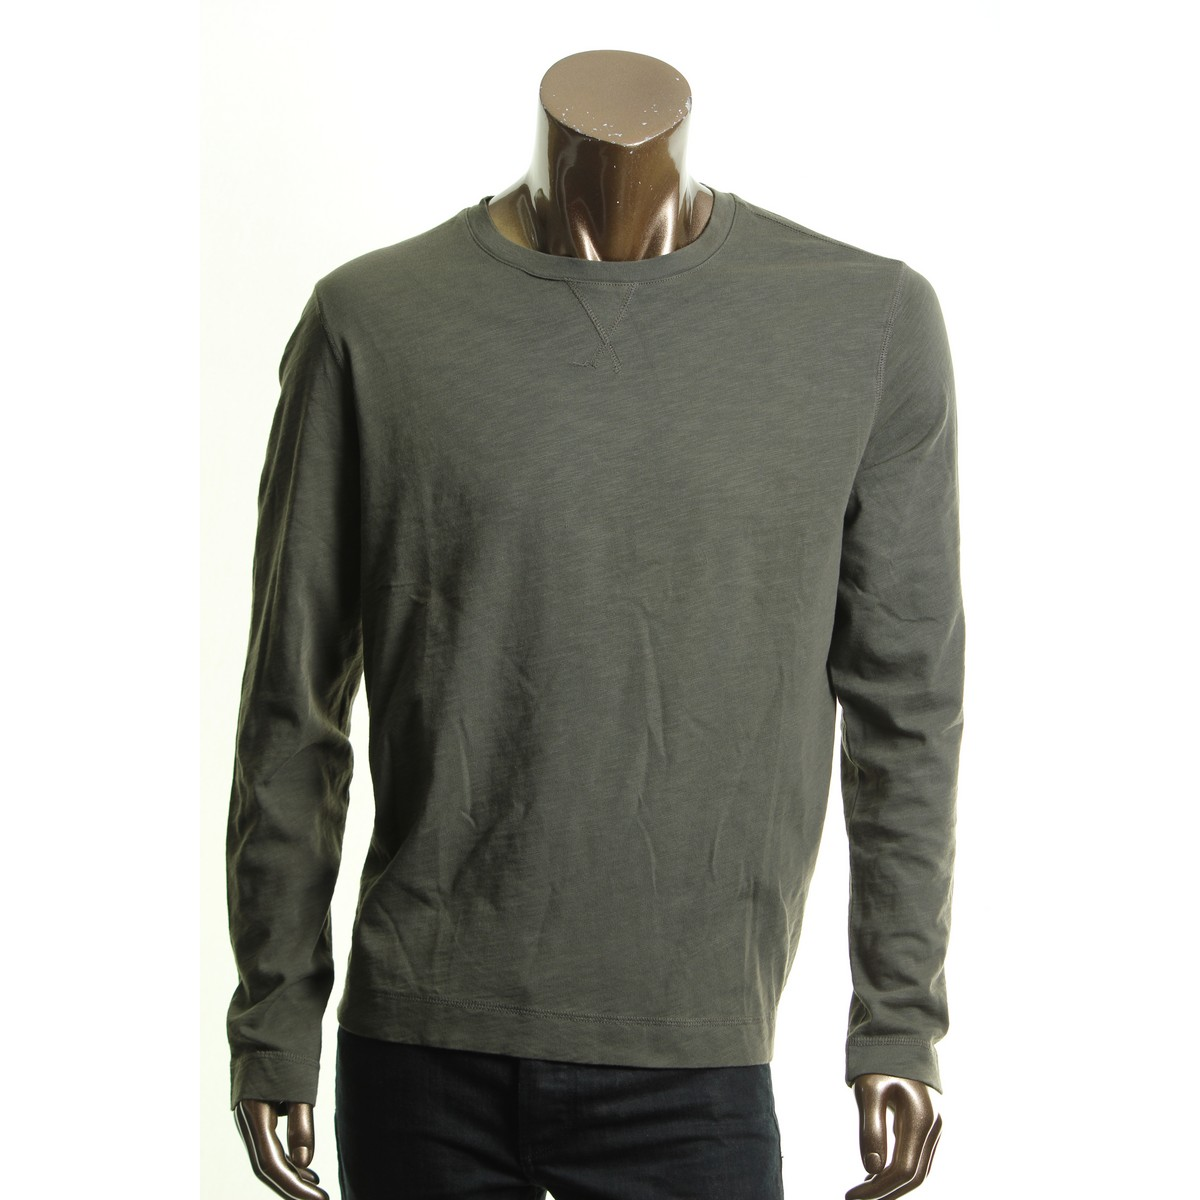 Calvin Klein New Men S Olive Green Crewneck Tee Shirt Tedo